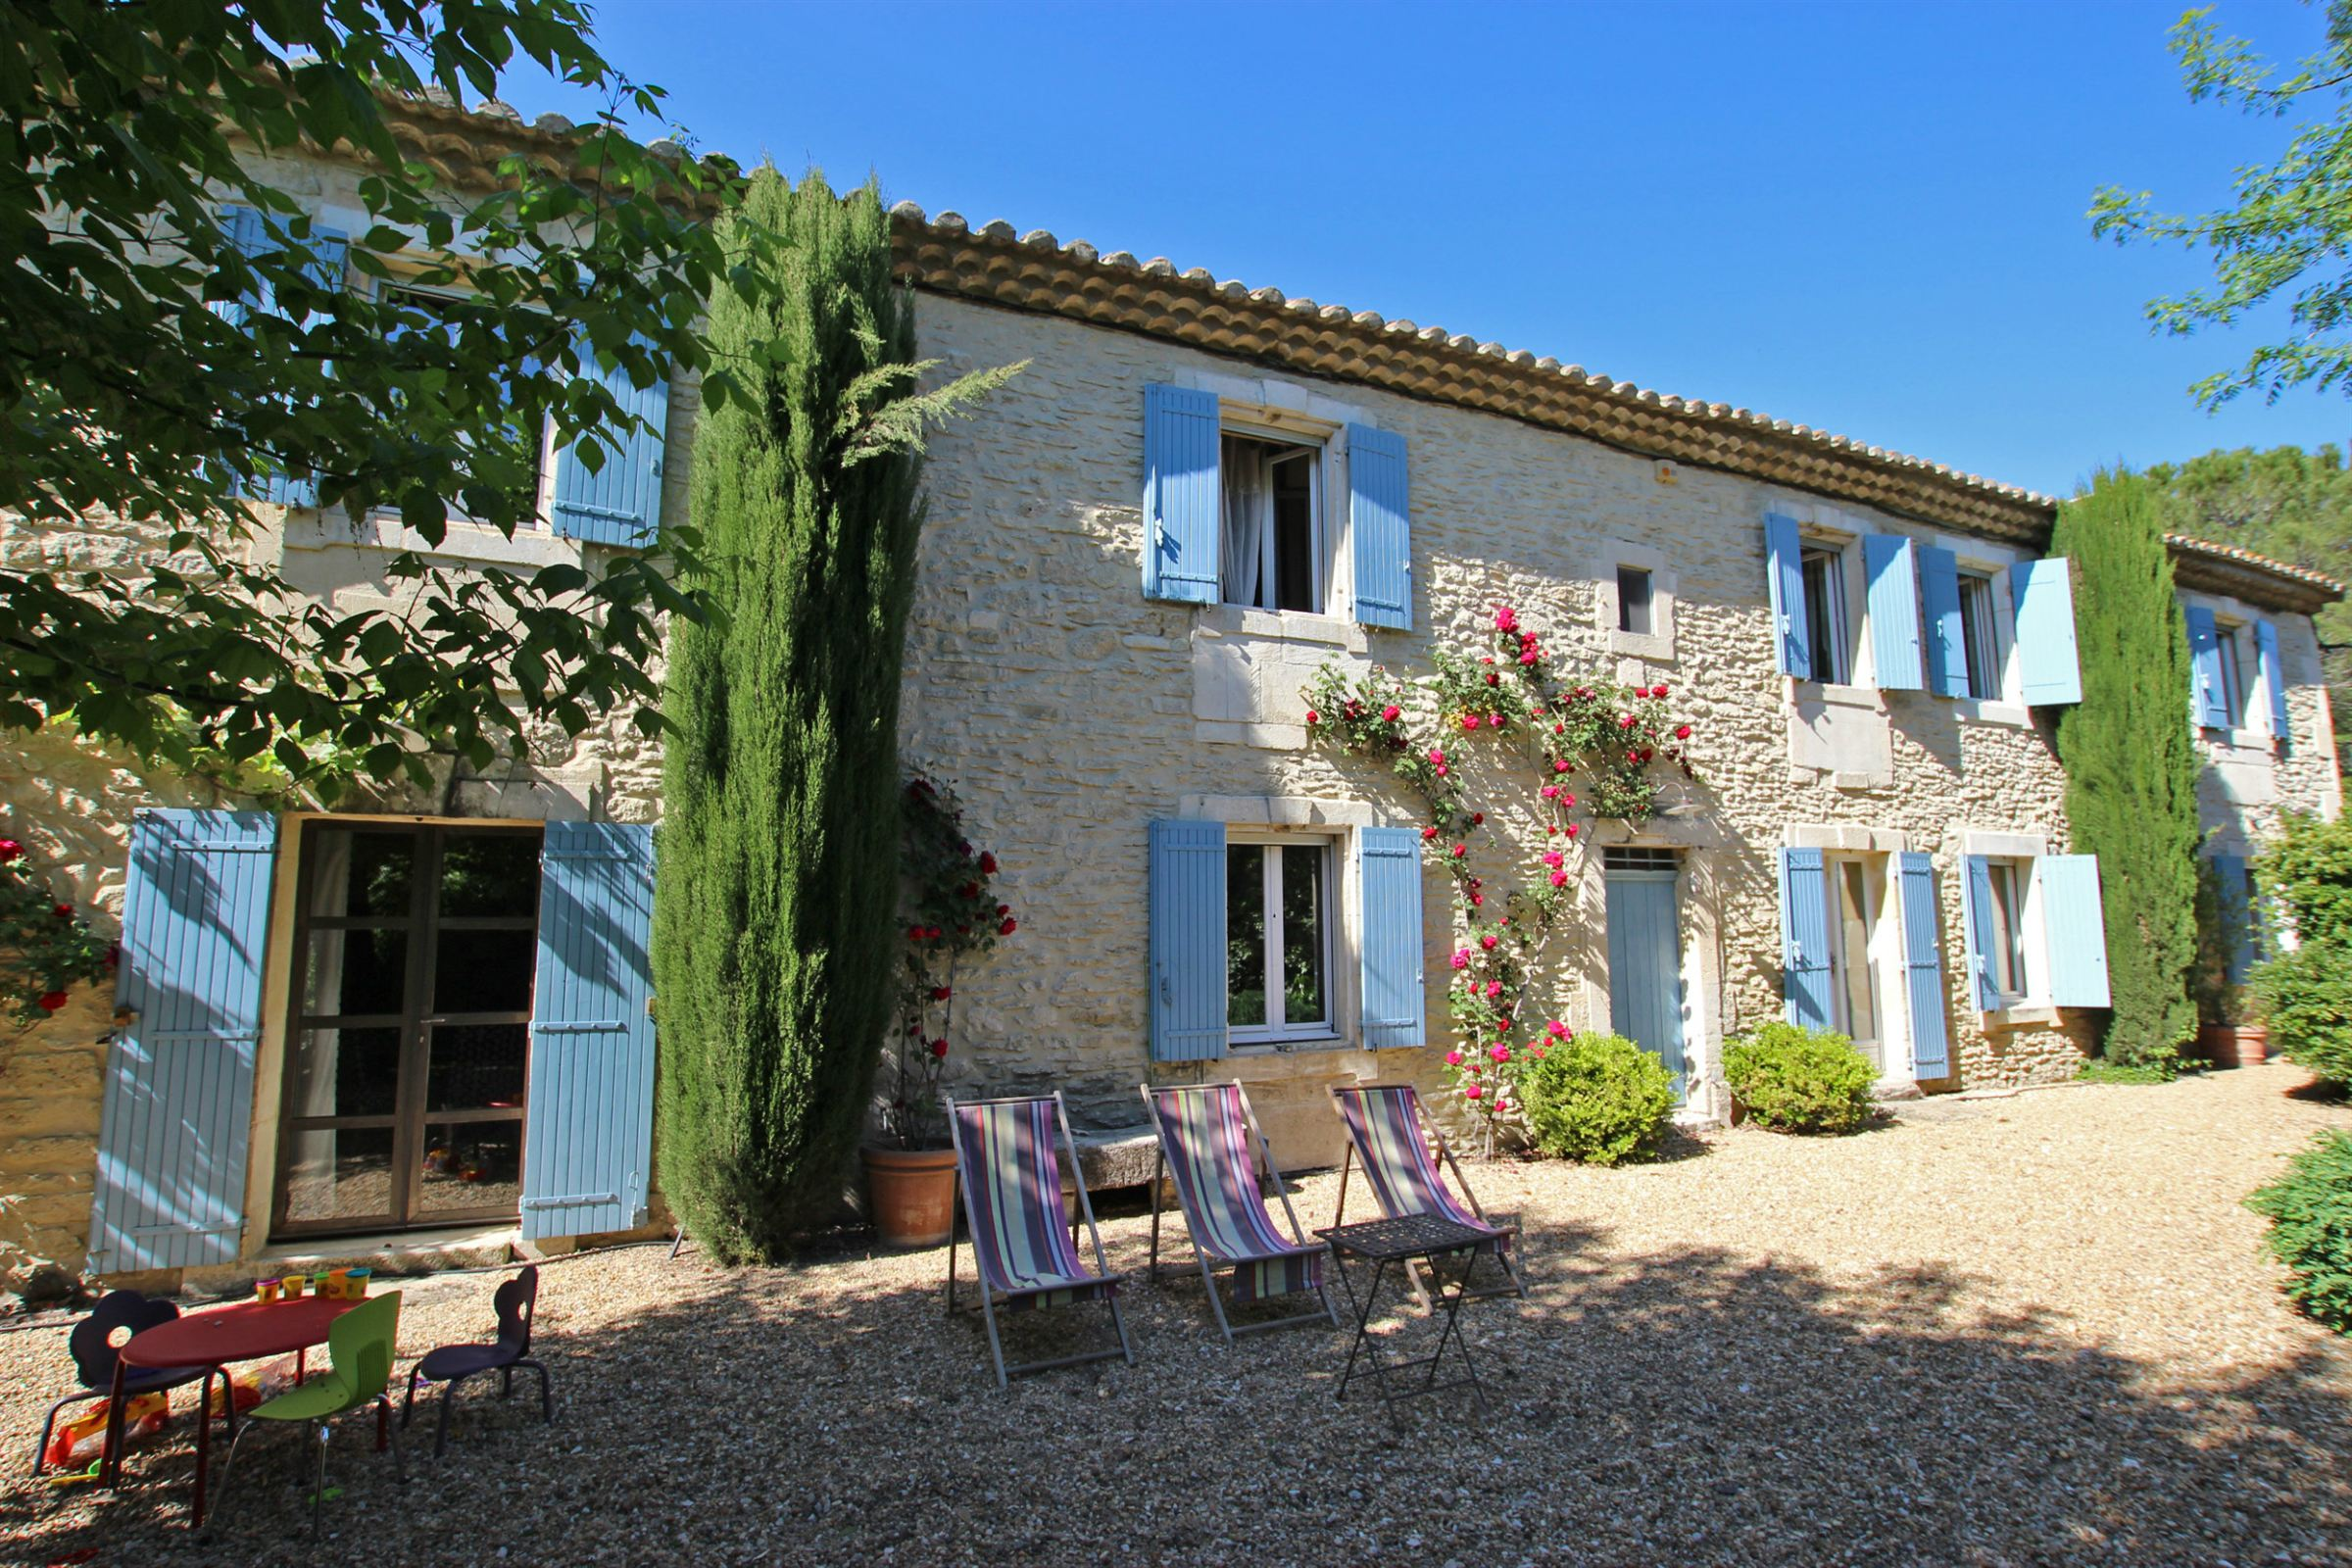 Property For Sale at Typical farmhouse in Provence close to St Remy de Provence